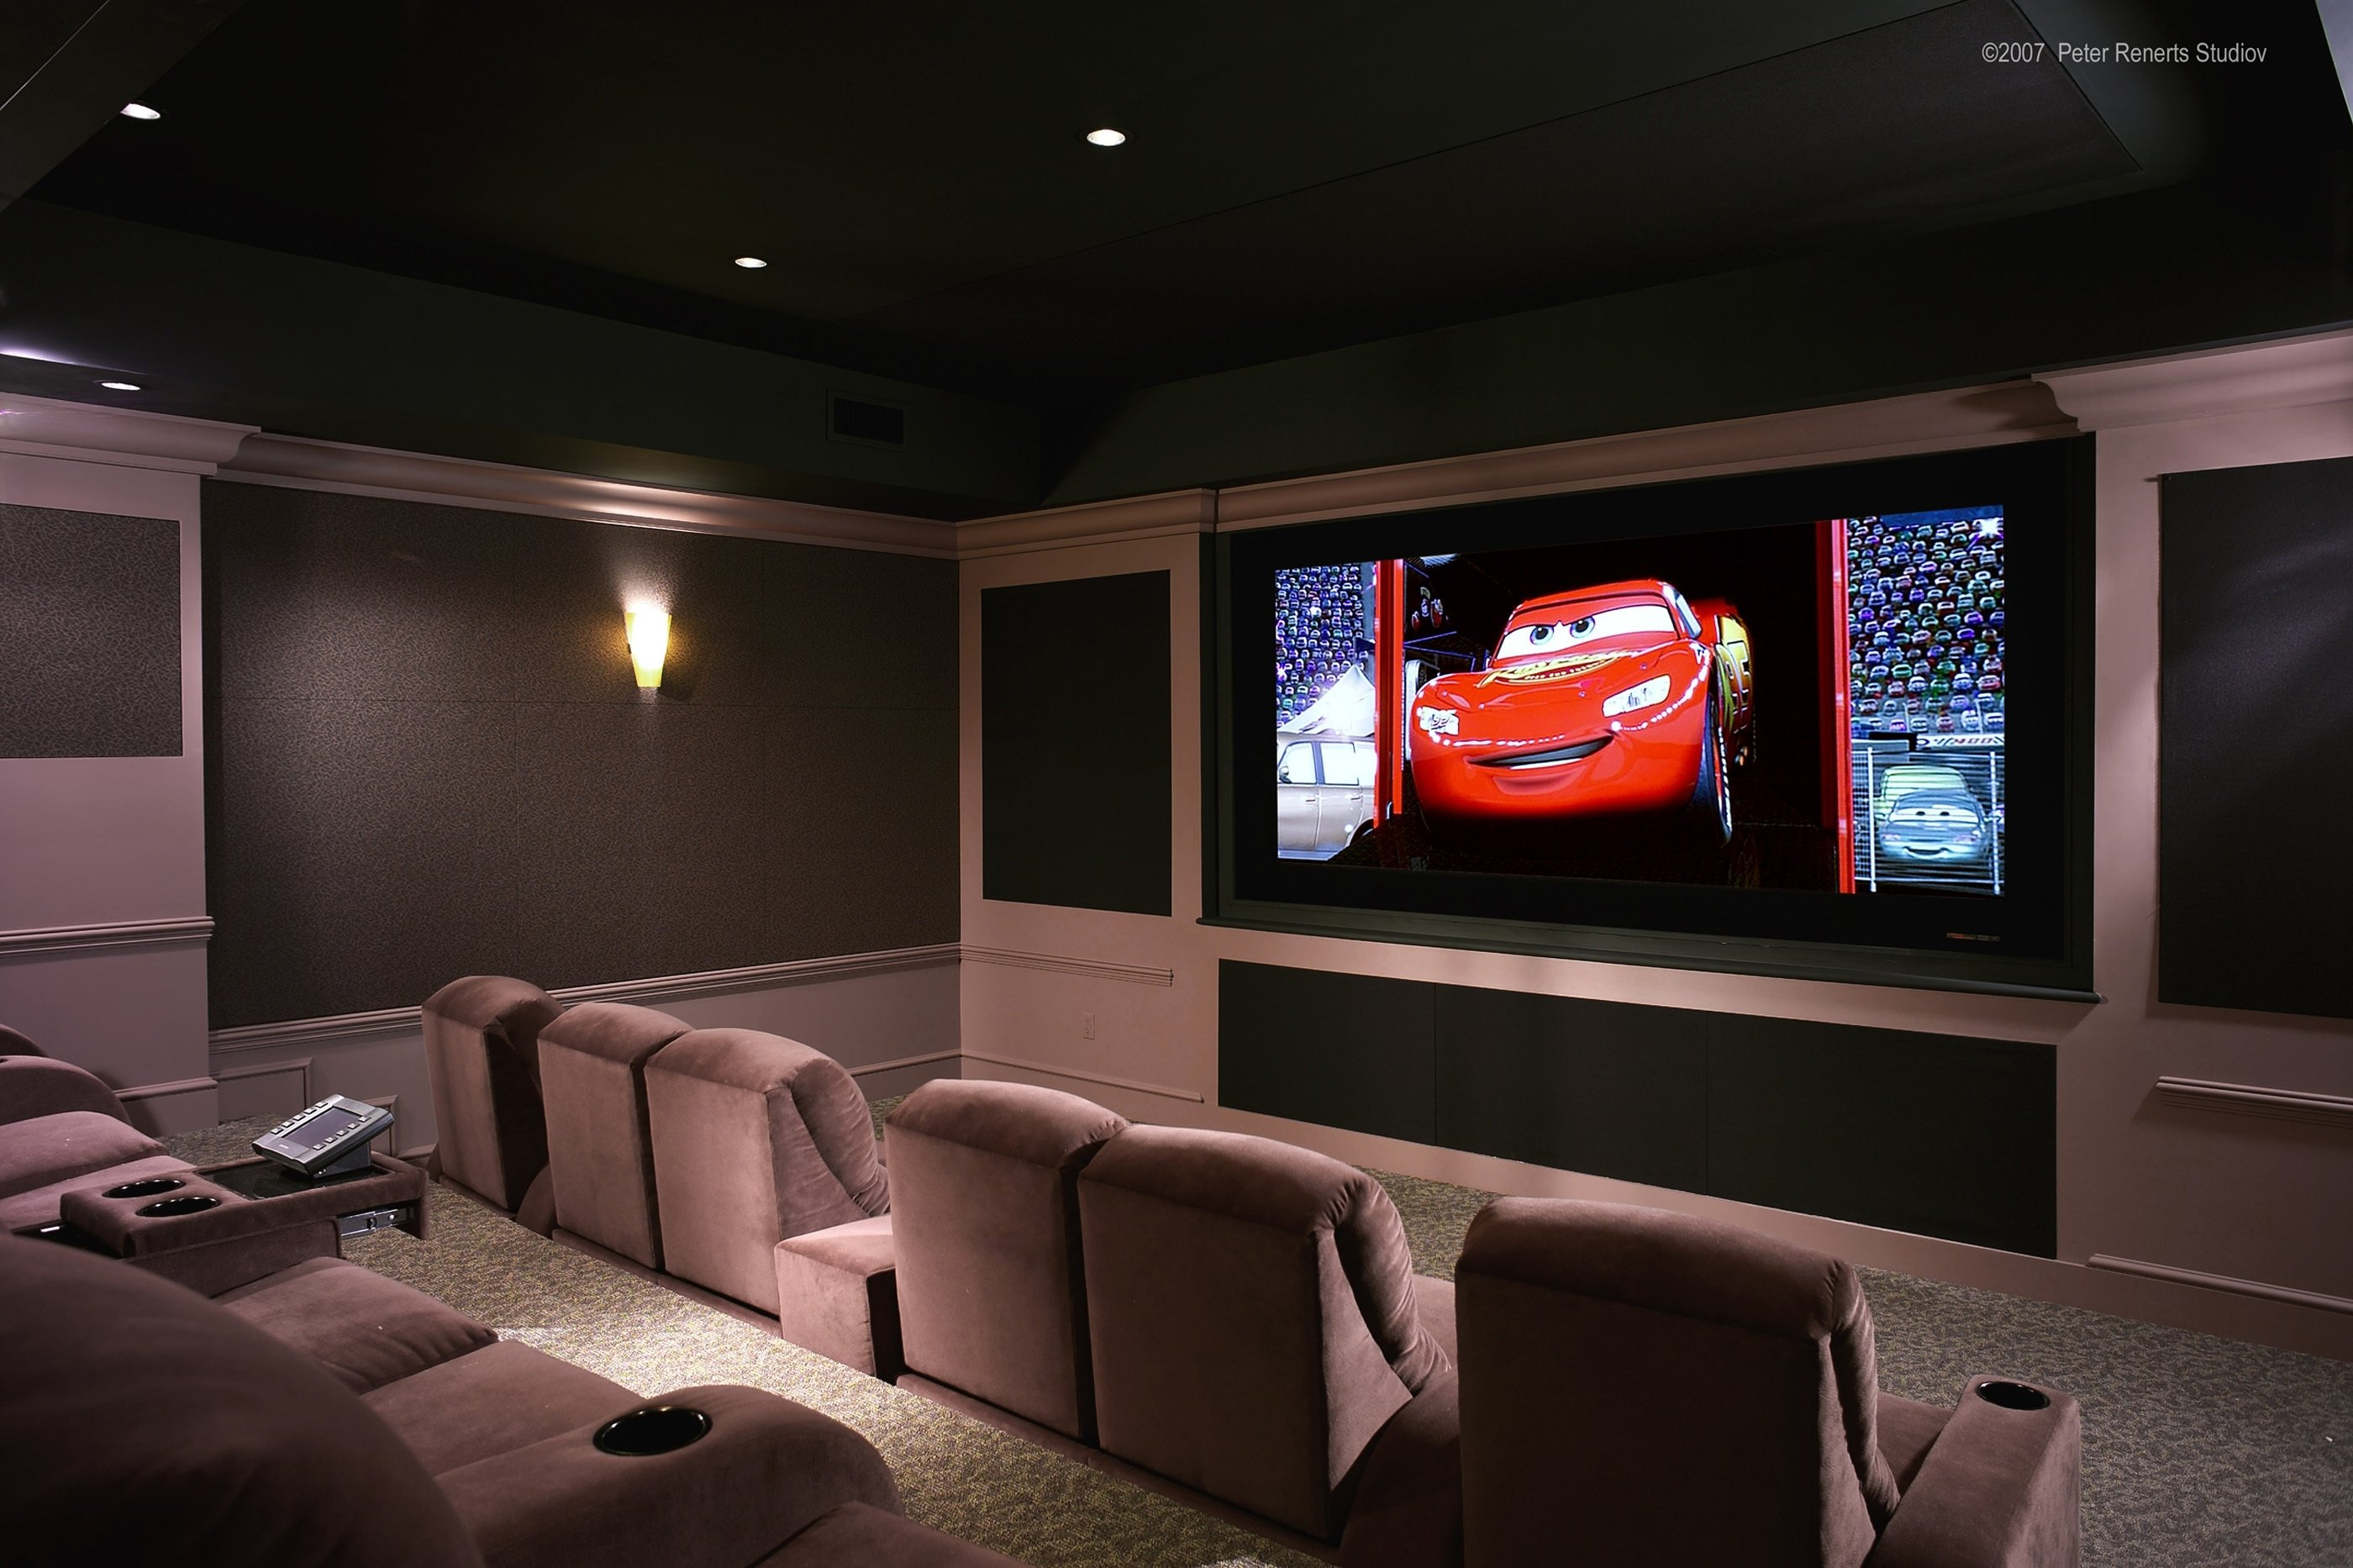 10 Most Popular Home Theater Ideas For Small Rooms survival small theater room marvelous home design decorating ideas 2020